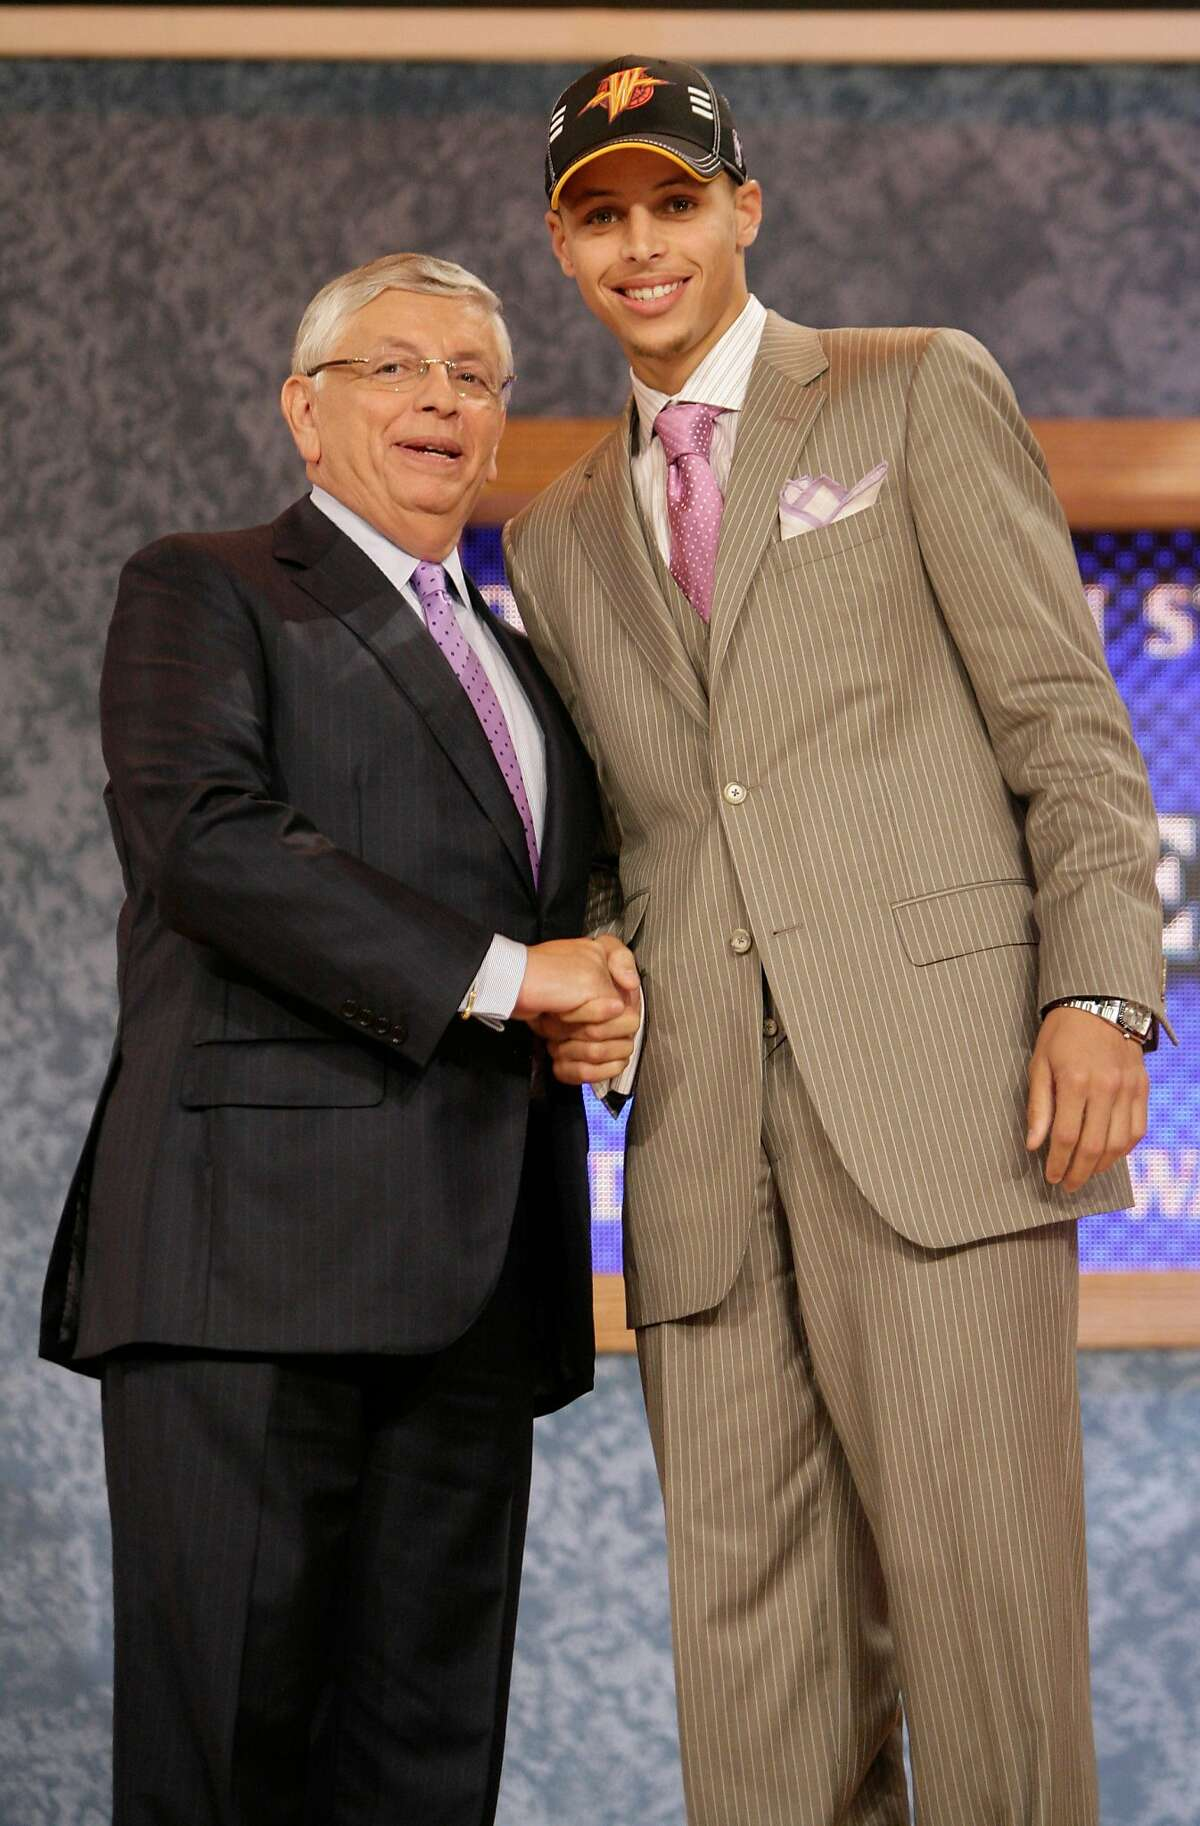 NBA commissioner David Stern, left, poses with Davidson's Stephen Curry, who was picked by the Golden State Warriors during the first round of the NBA basketball draft Thursday, June 25, 2009, in New York. (AP Photo/Seth Wenig)